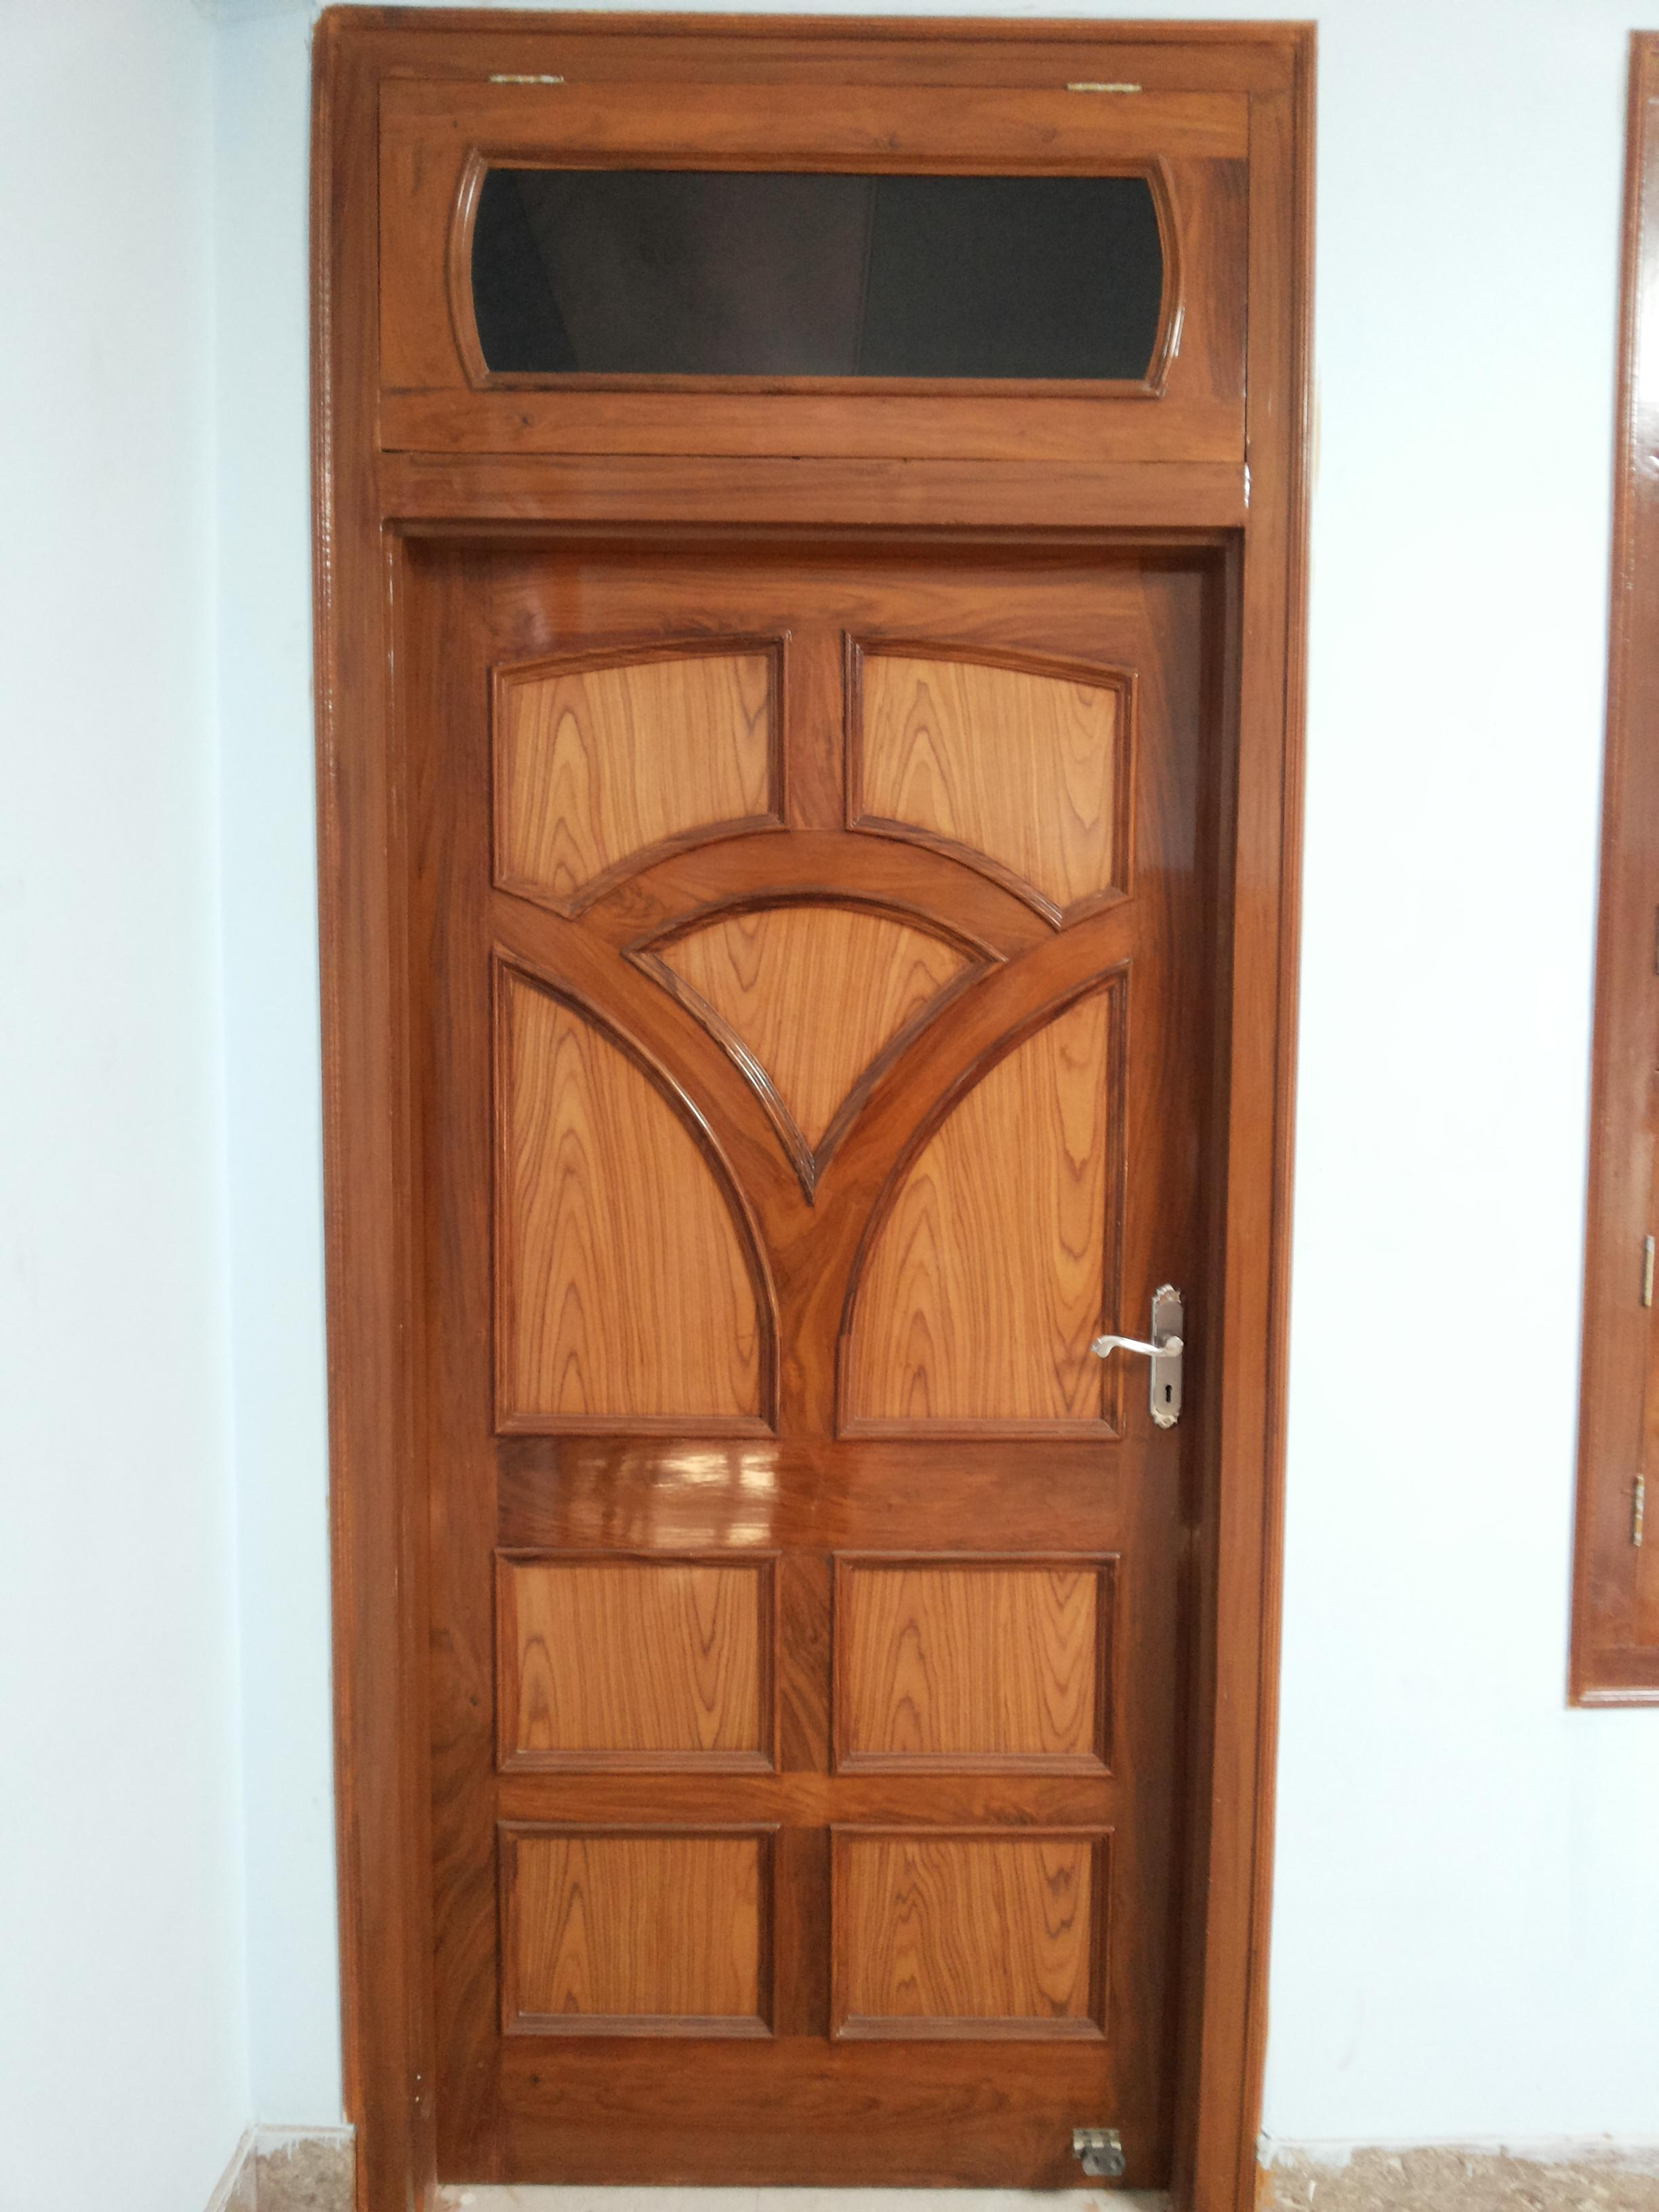 Single panel interior wood door design gharexpert for Single main door designs for home